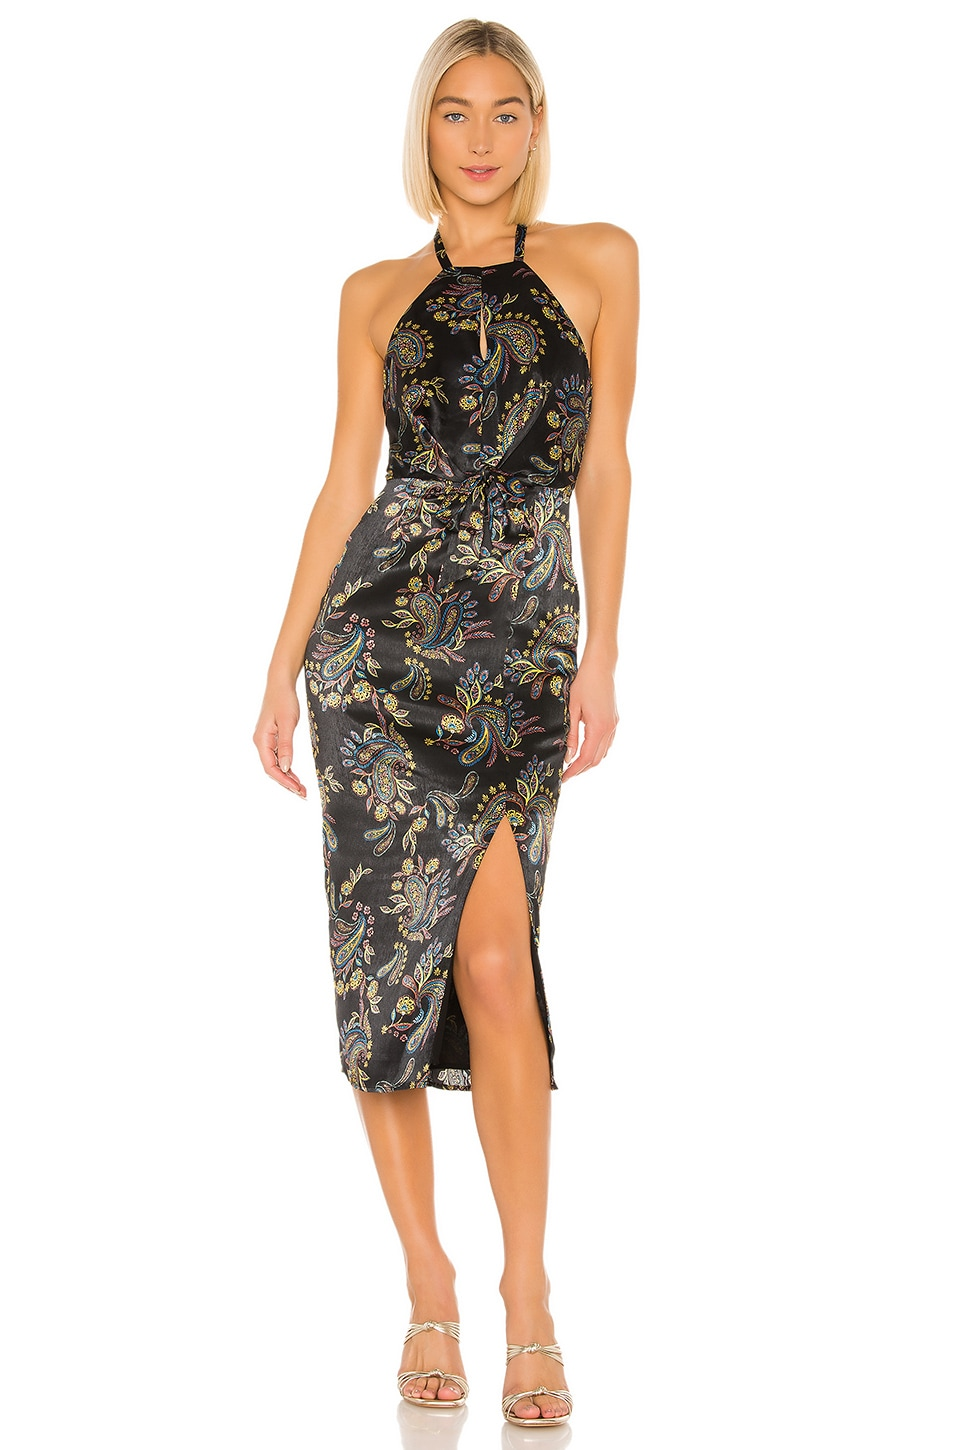 House of Harlow 1960 x REVOLVE Milo Dress in Noir Paisley Multi